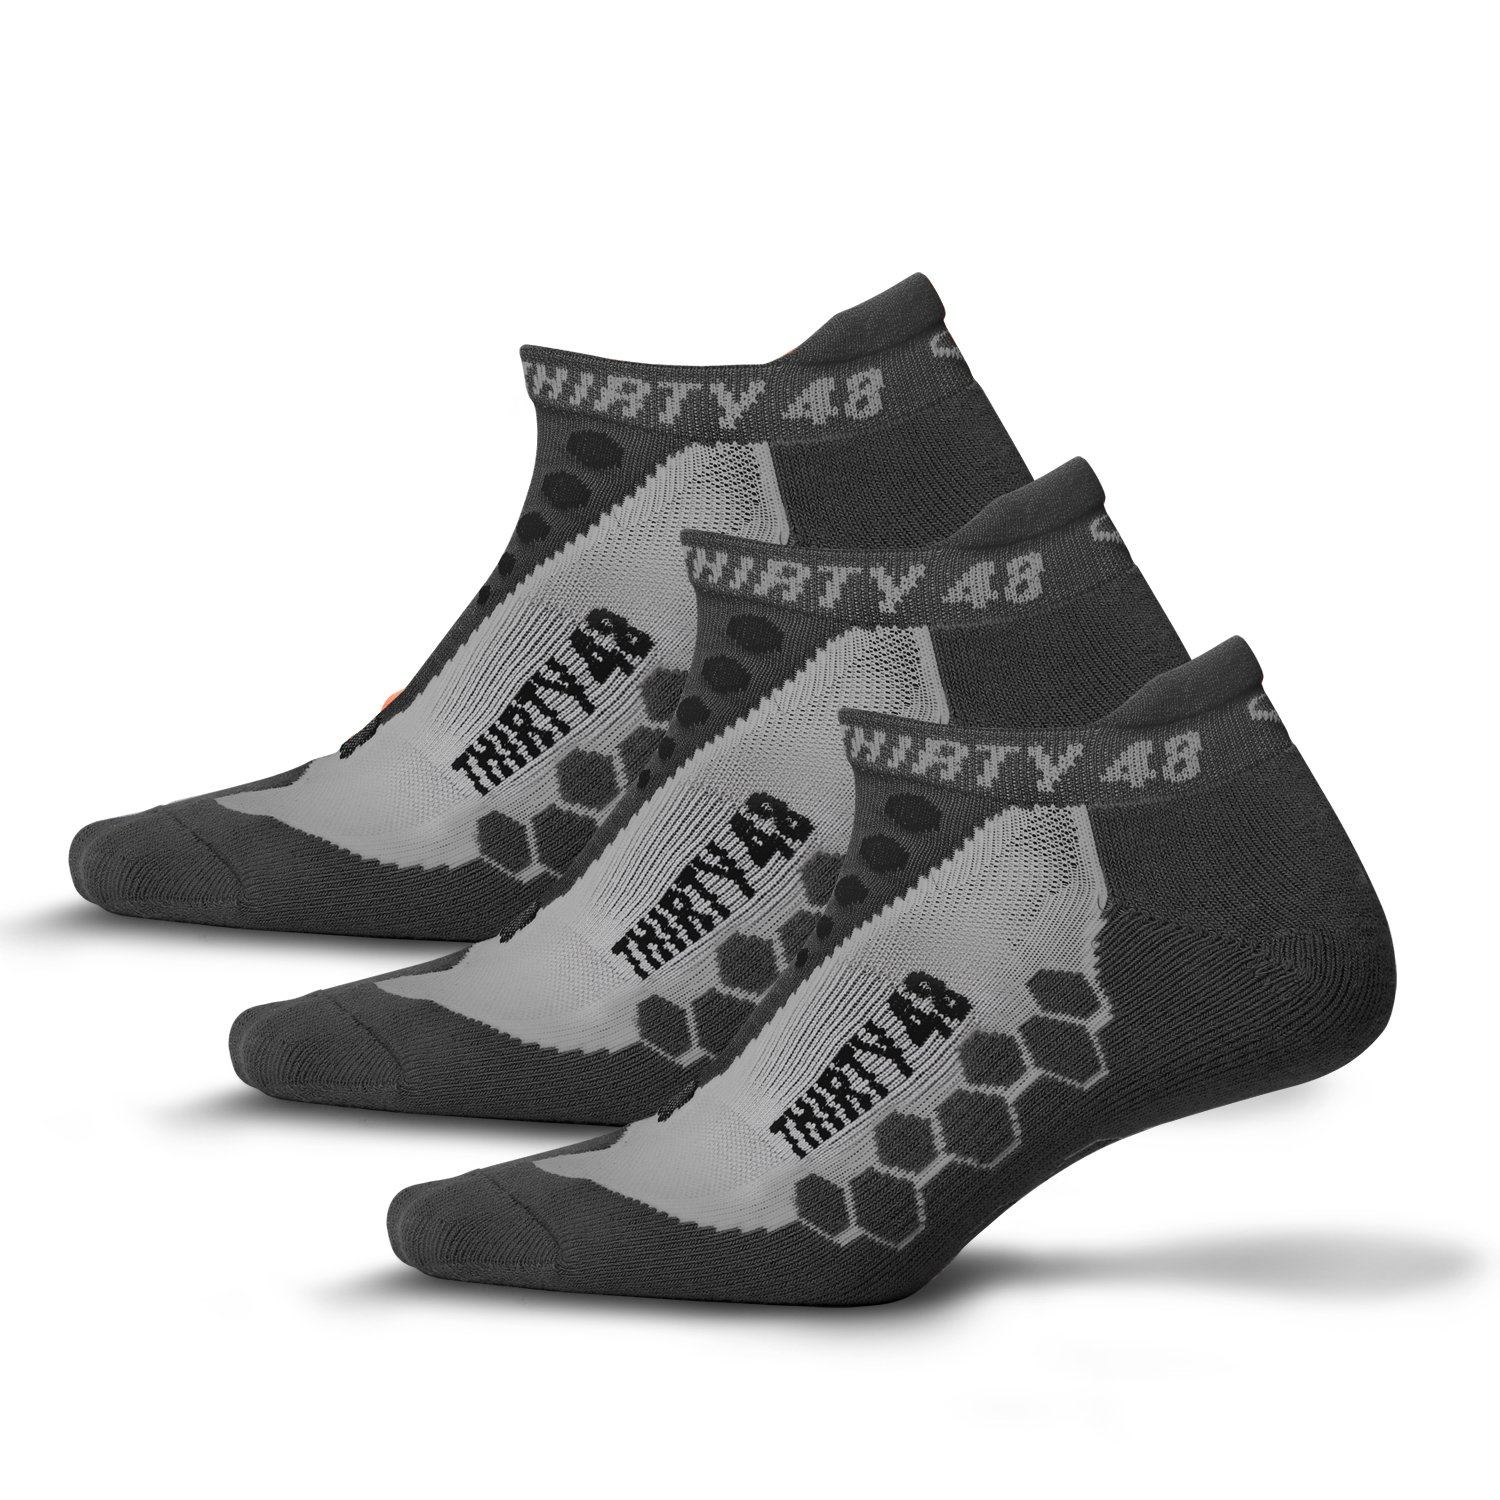 Thirty 48 Running Socks for Men and Women Features Coolmax Fabric That Keeps Feet Cool & Dry - 1 Pair or 3 Pairs